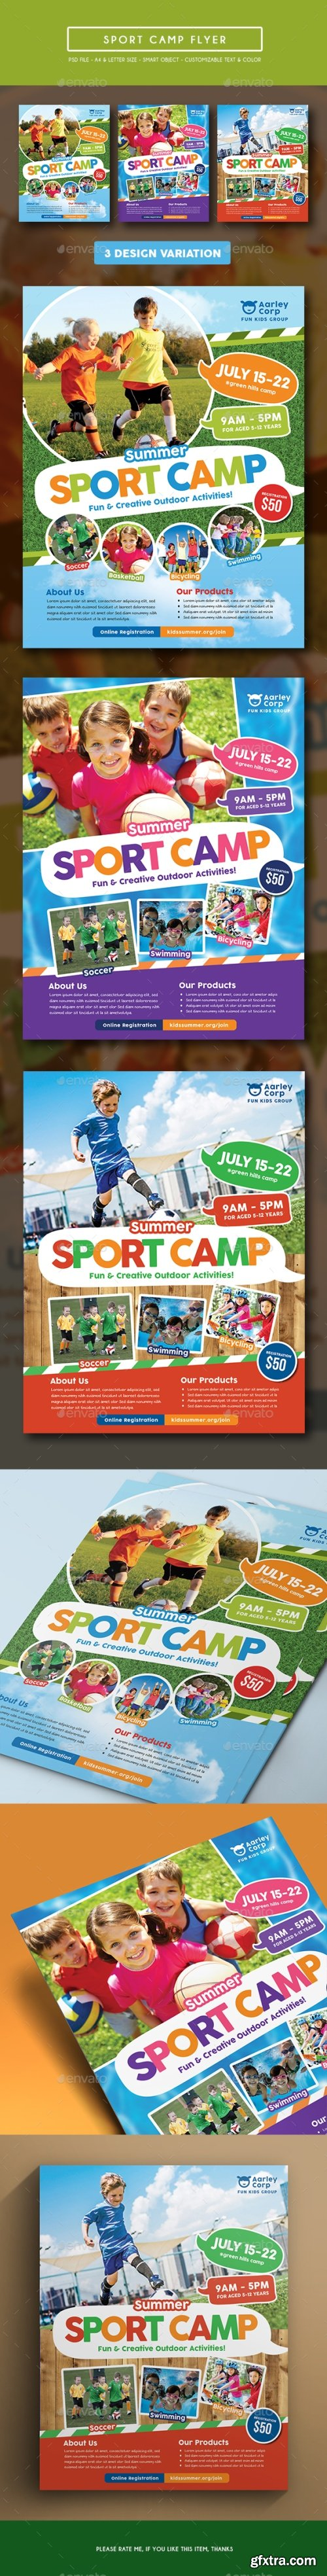 Graphicriver - Sport Camp Flyer 15373514